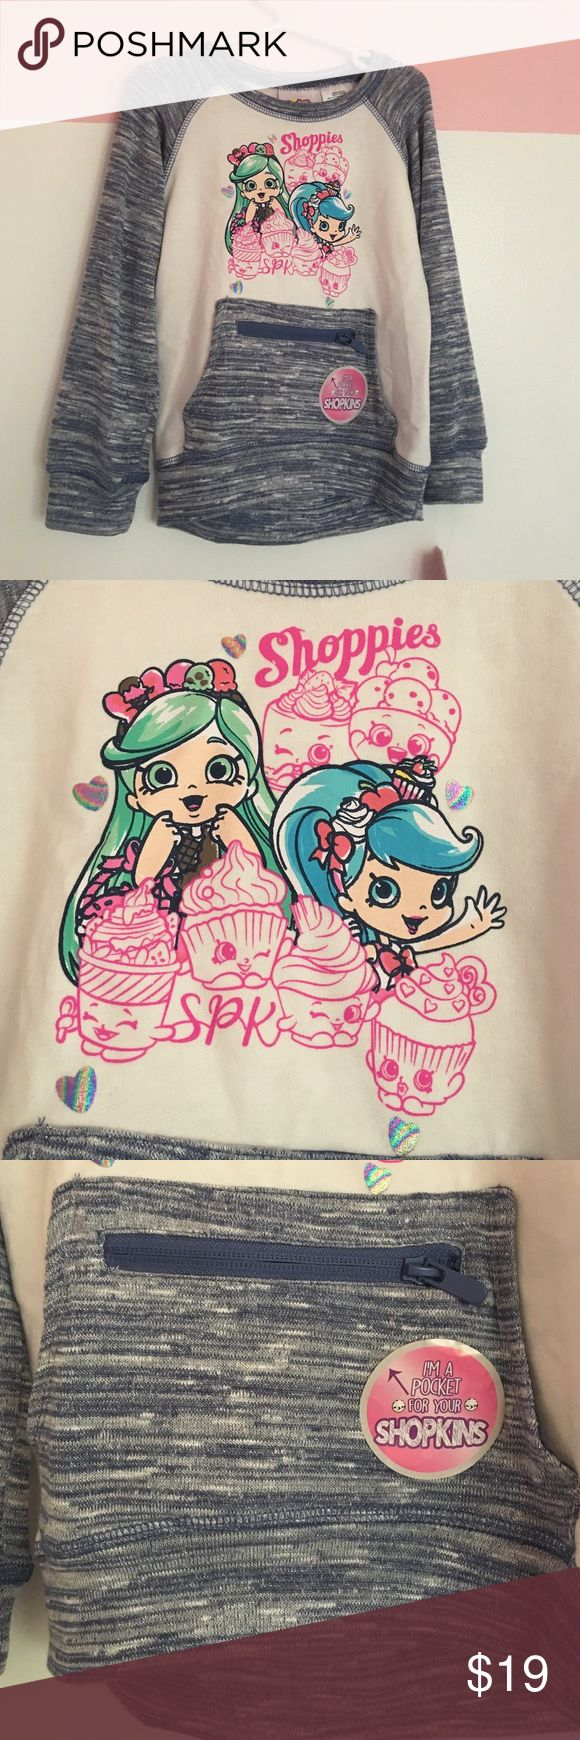 Shopkins Shoppies Longsleeve This is the cutest Shopkins Shoppies longsleeve shirt! It even features a zippered pocket in the front to hold your Shopkins! My daughter received it for Christmas but it's too small & we're unable to exchange it. Perfect for the little Shopkins collector in your life! Size 4/5T. Shirts & Tops Tees - Long Sleeve